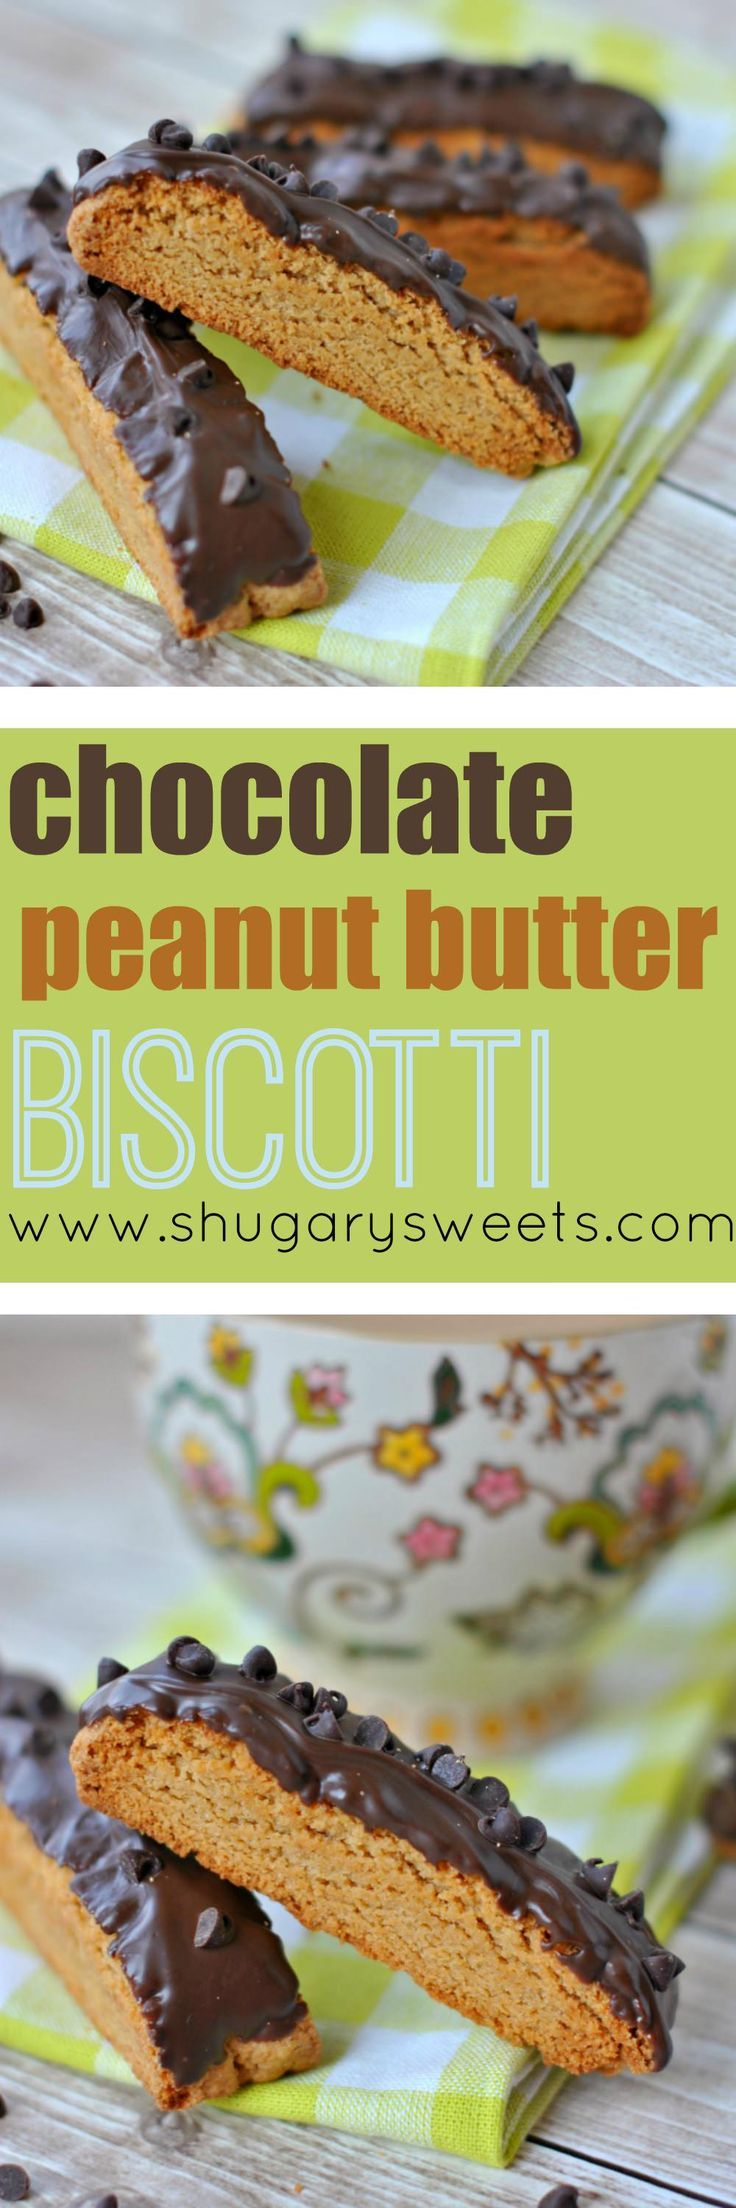 Everyone loves the perfect marriage of chocolate and peanut butter, right? This Chocolate Peanut Butter Biscotti is a crunchy cookie...for BREAKFAST! You're welcome.